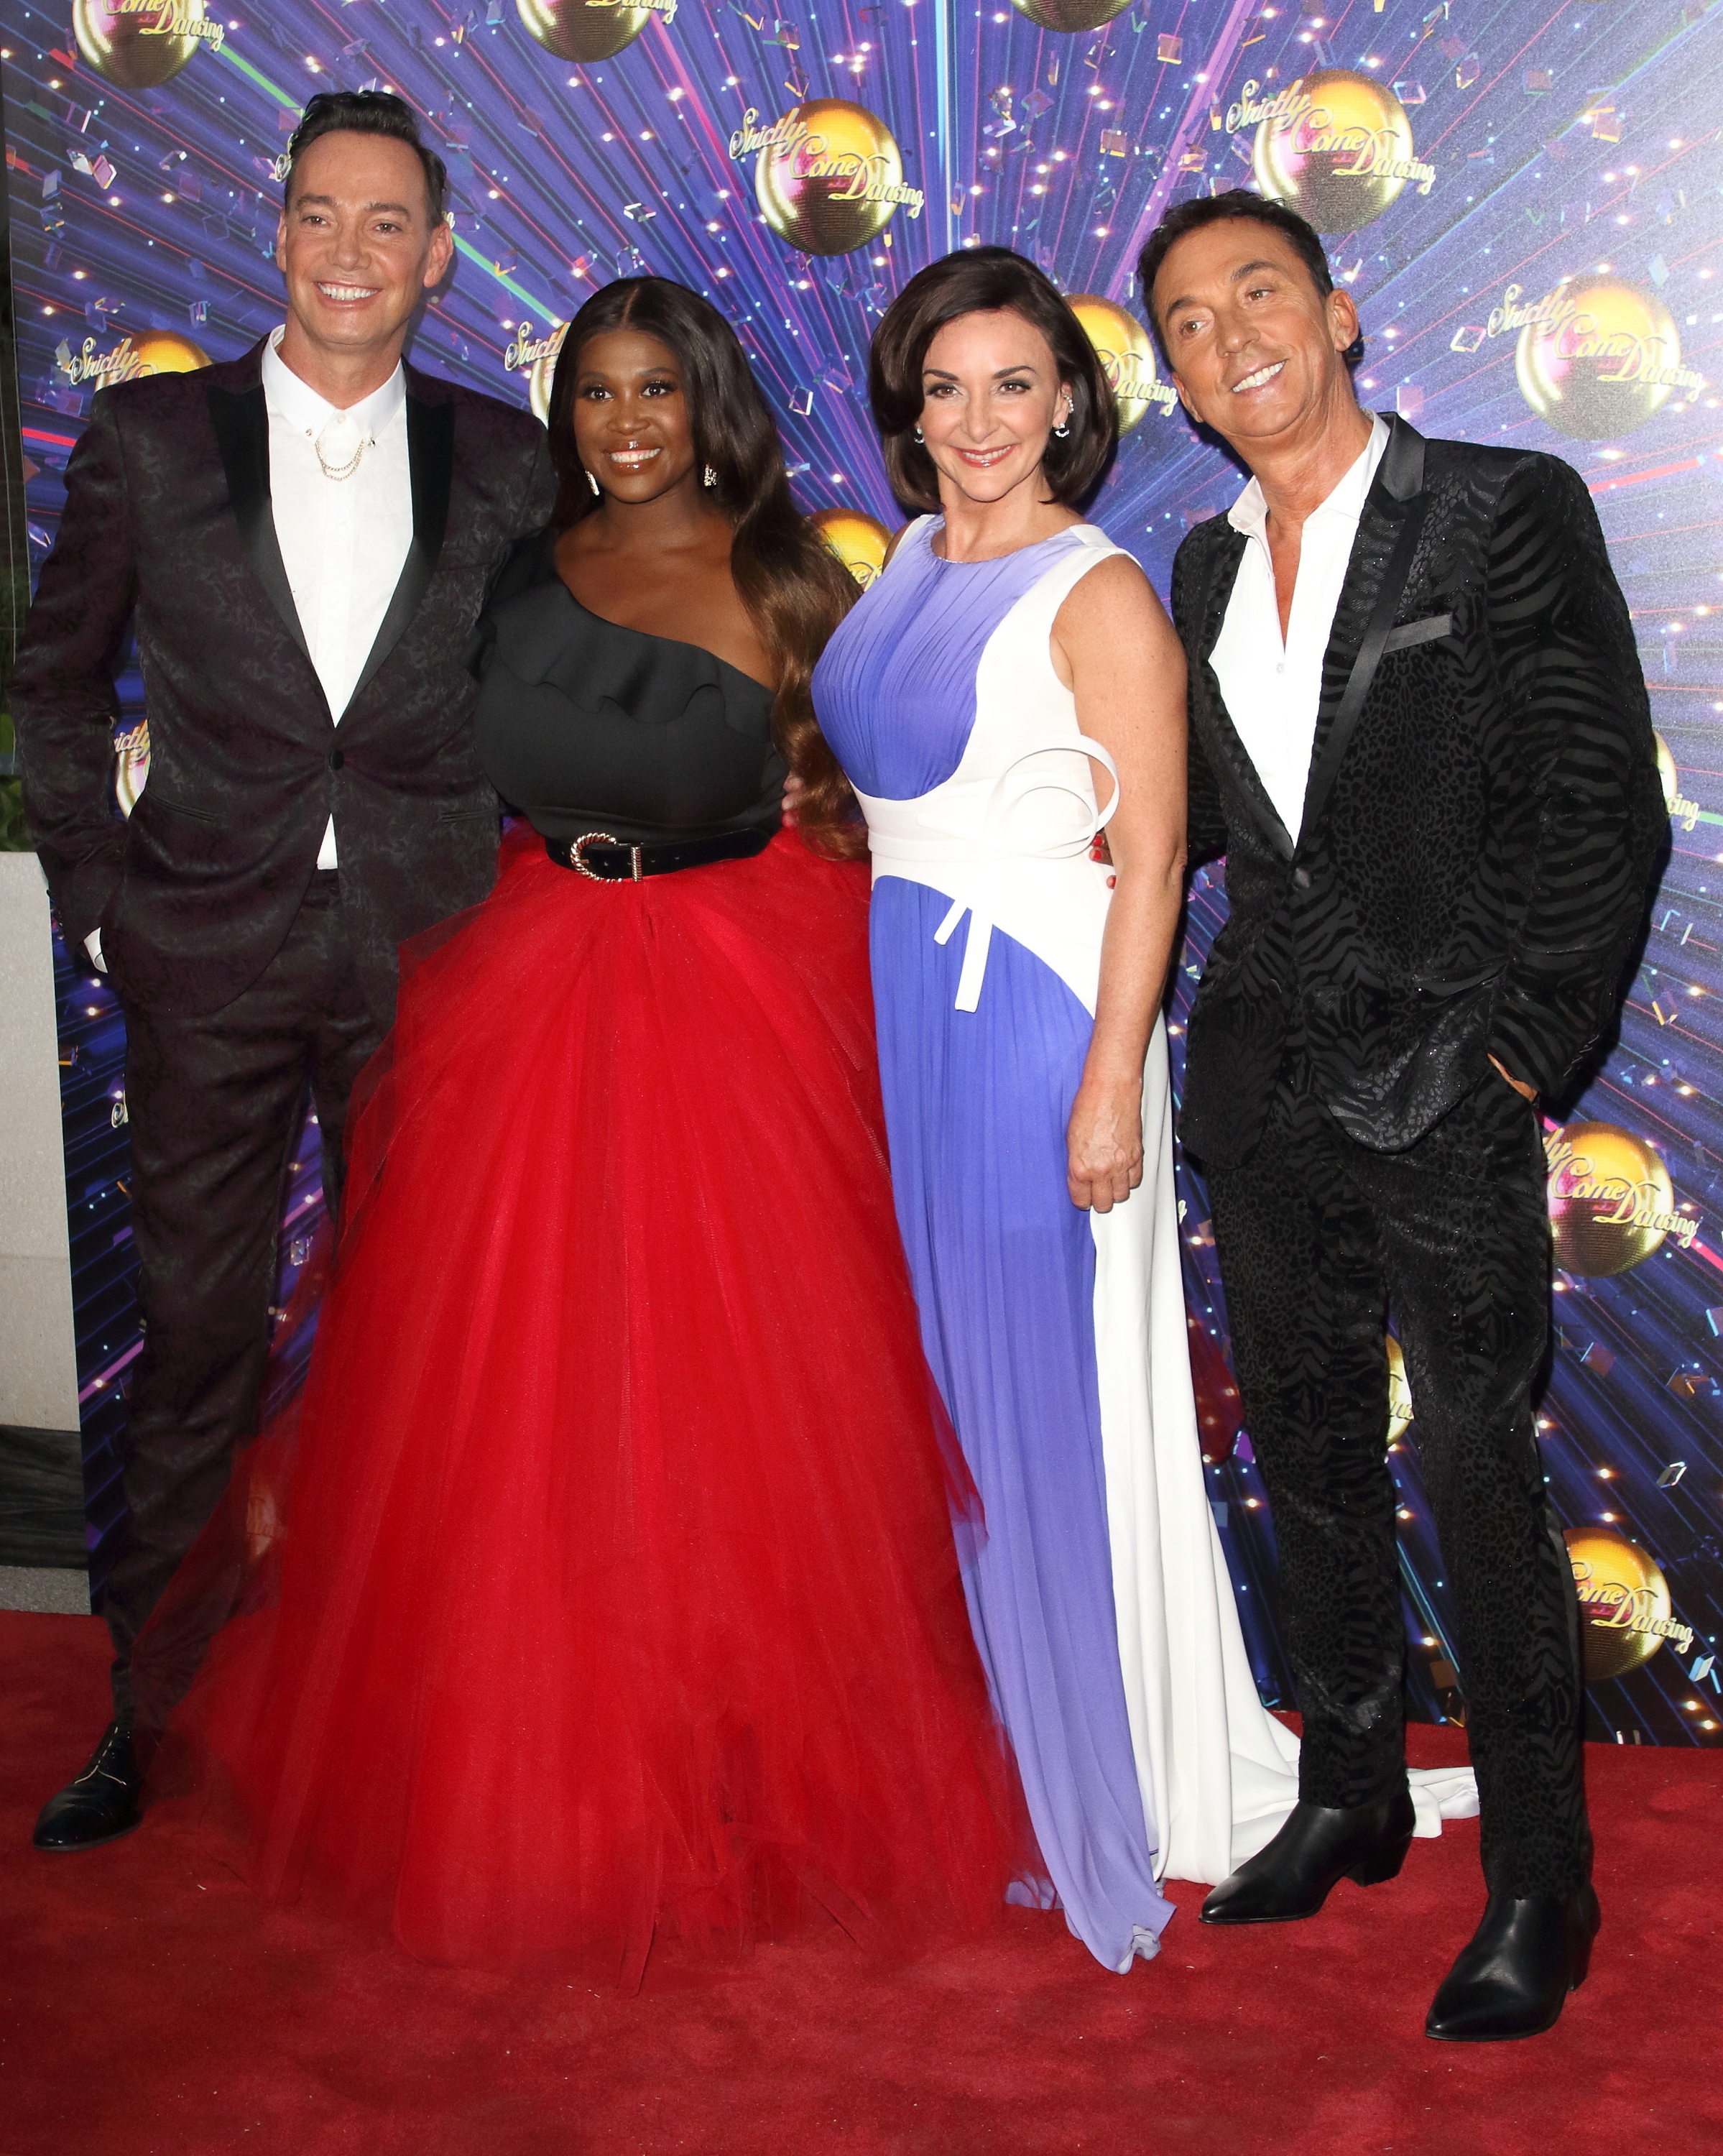 LONDON, UNITED KINGDOM - 2019/08/26: Craig Revel Horwood, Motsi Mabuse, Shirley Ballas and Bruno Tonioli at the Strictly Come Dancing Launch at BBC Broadcasting House in London. (Photo by Keith Mayhew/SOPA Images/LightRocket via Getty Images)